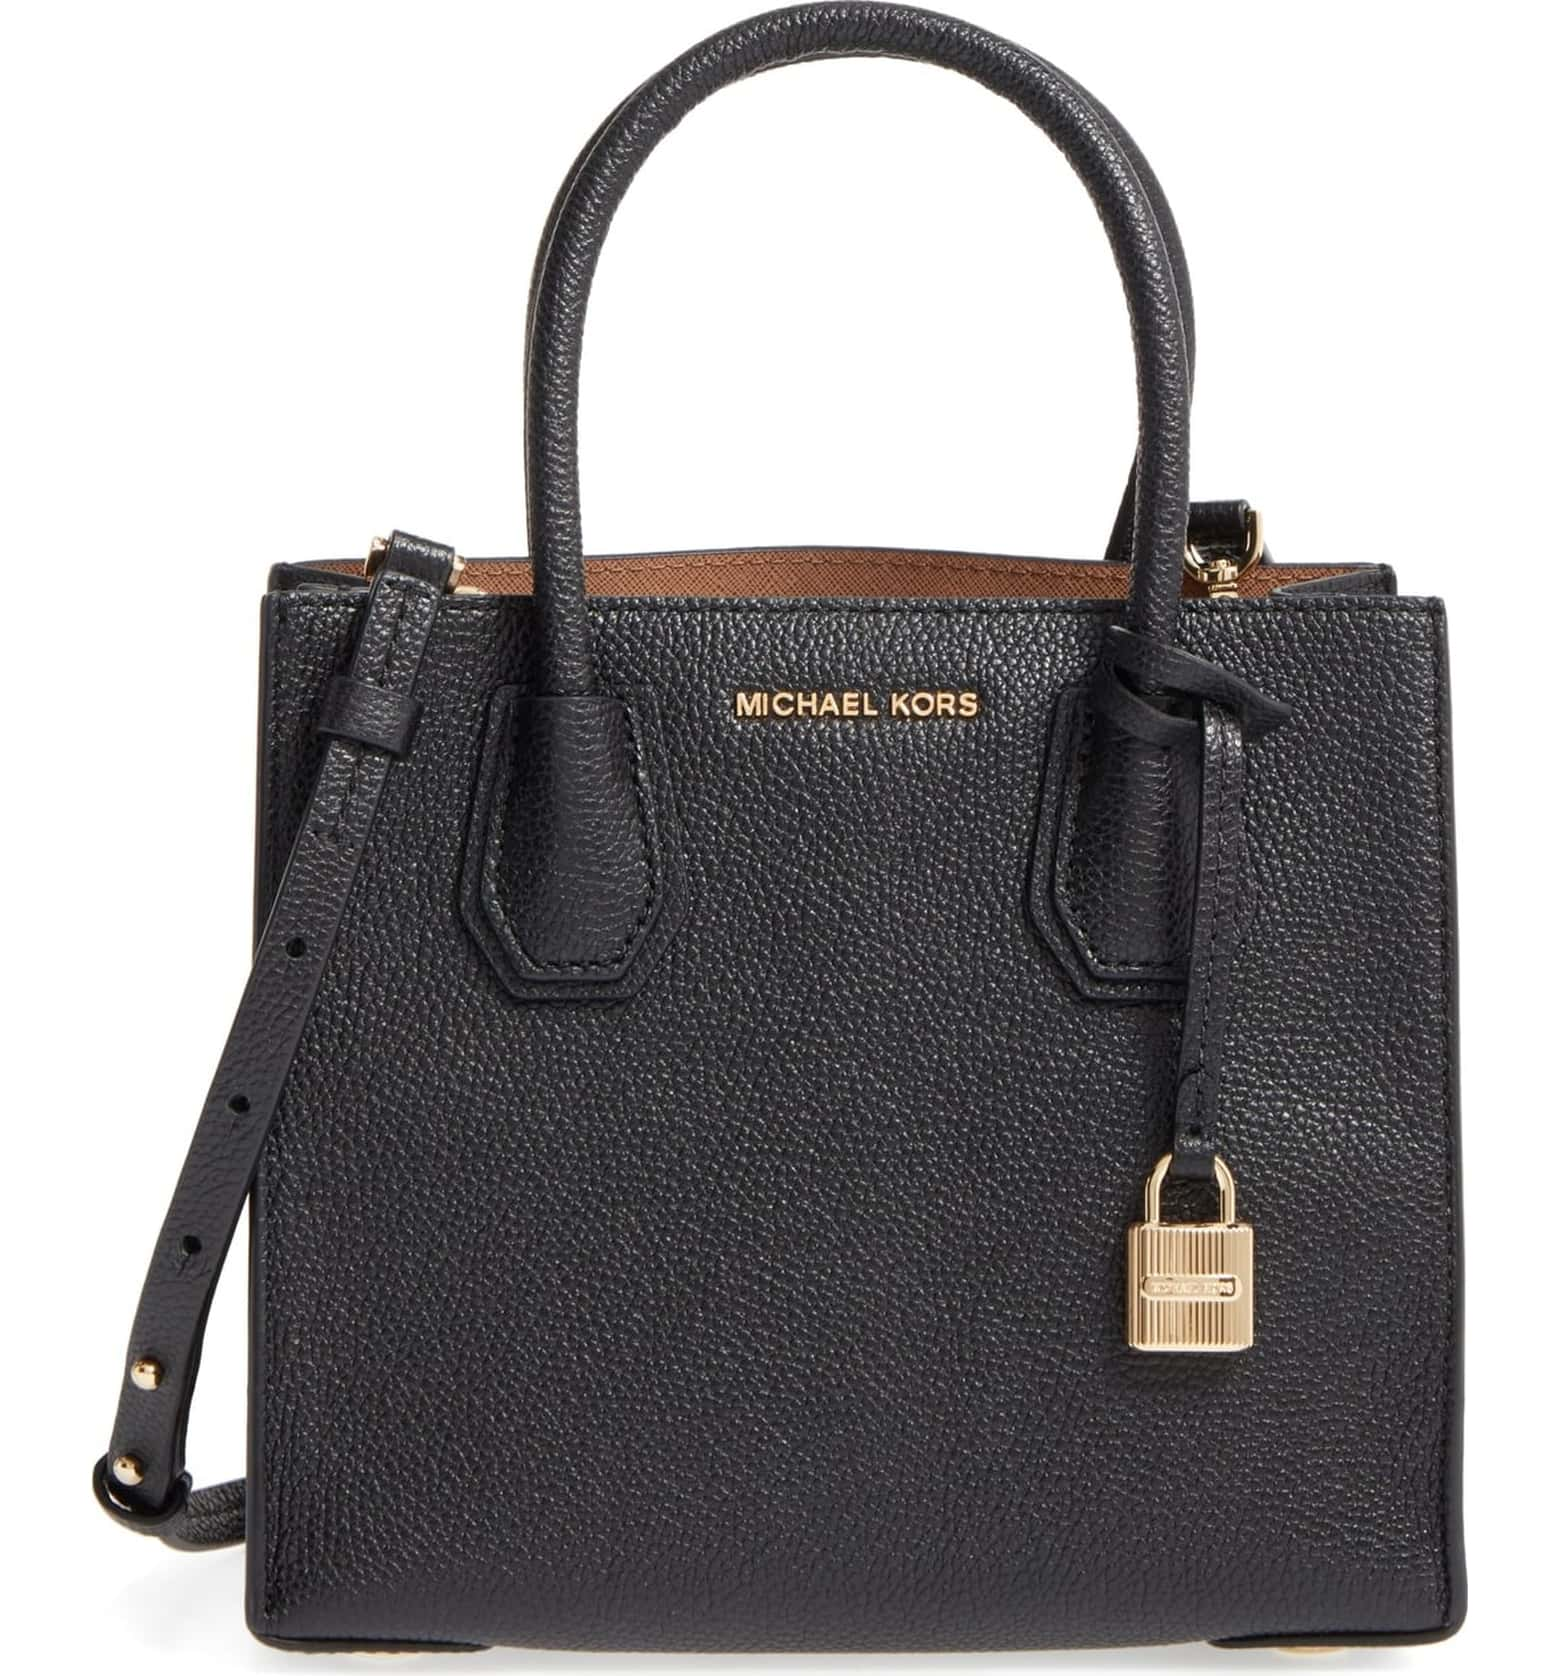 Michael Kors Mercer Leather Crossbody Bag